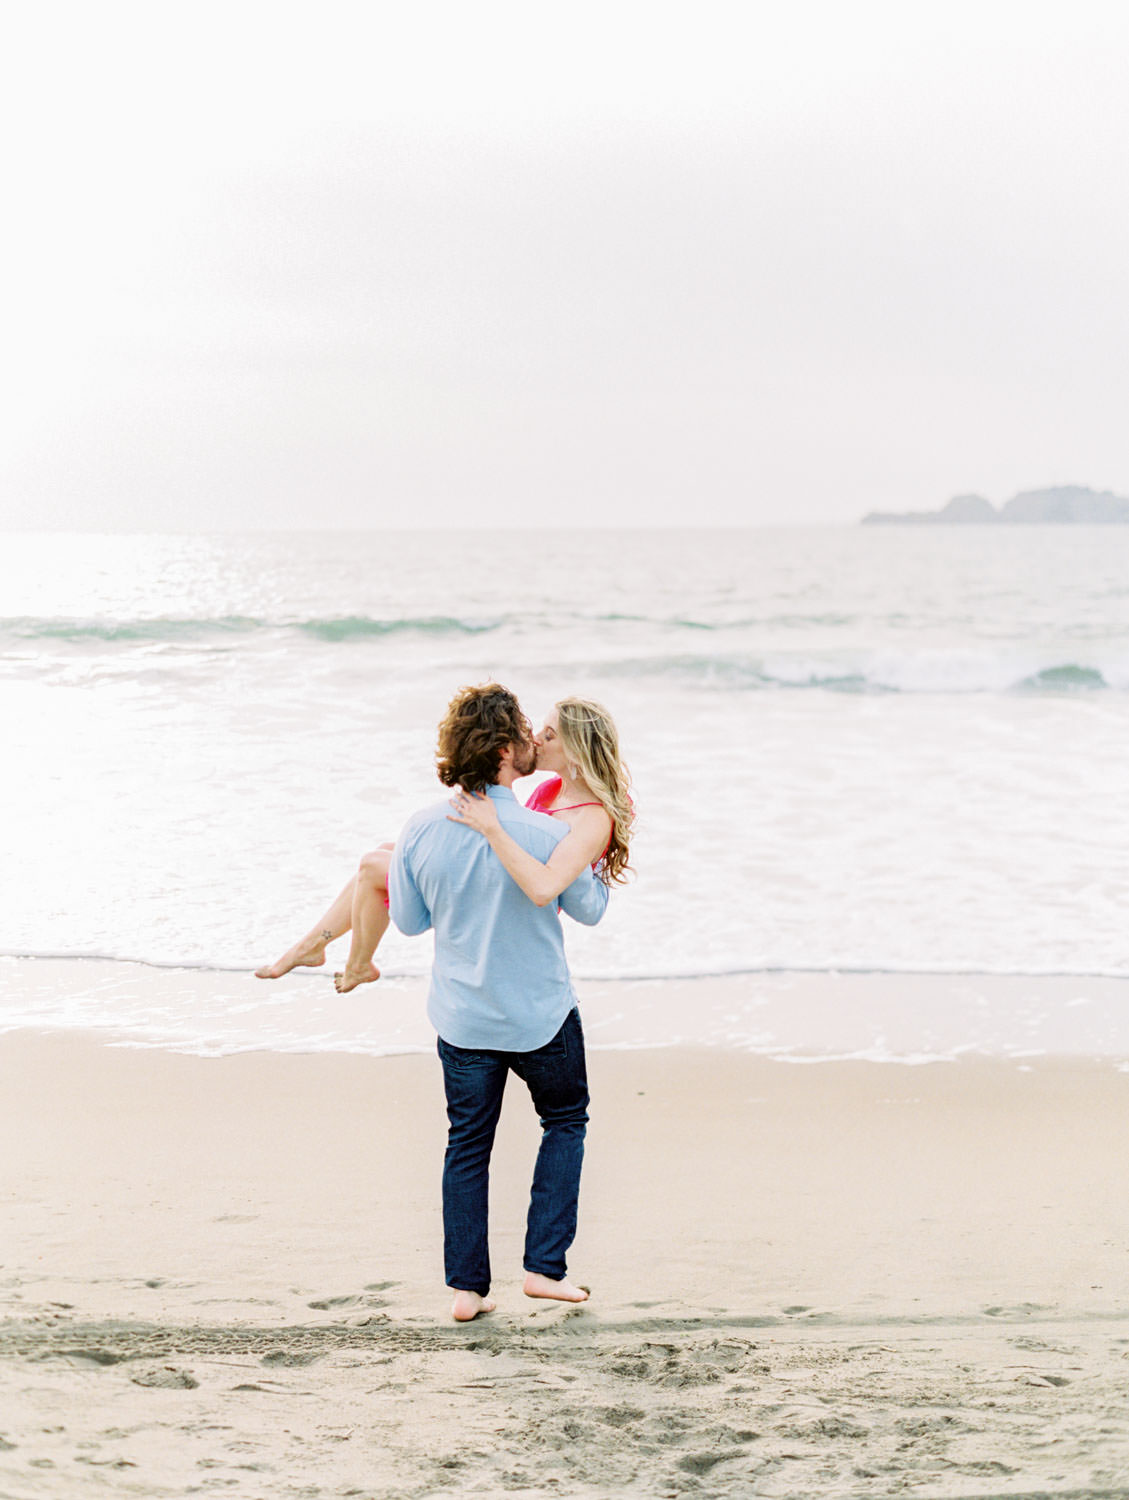 Groom carrying bride to the water, Baker Beach Engagement Session in San Francisco captured on film by Cavin Elizabeth